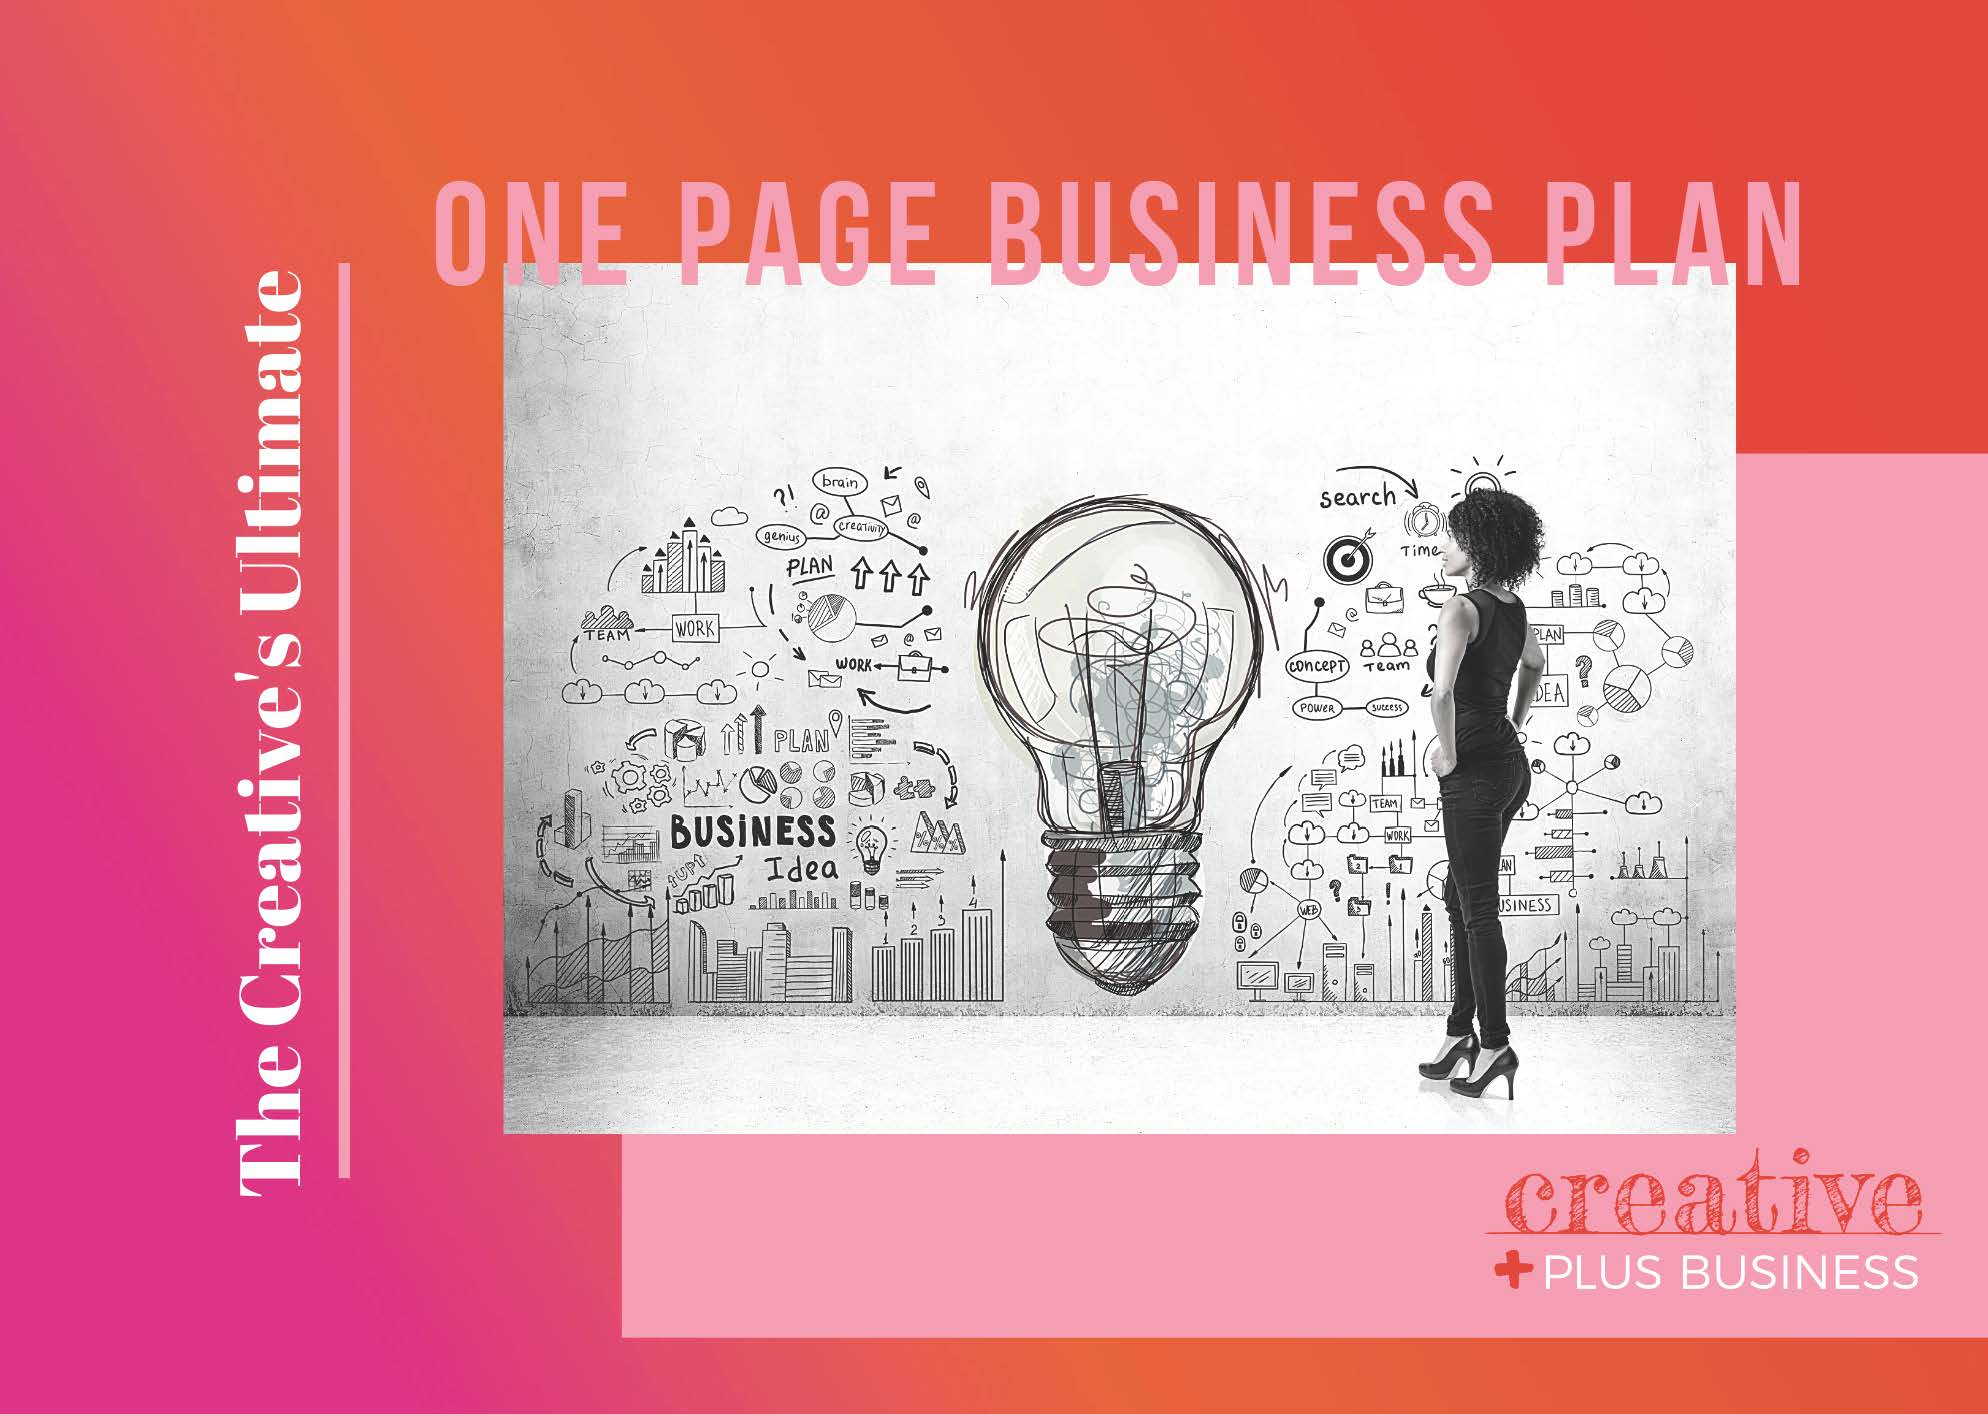 One page Business Plan for Creative people